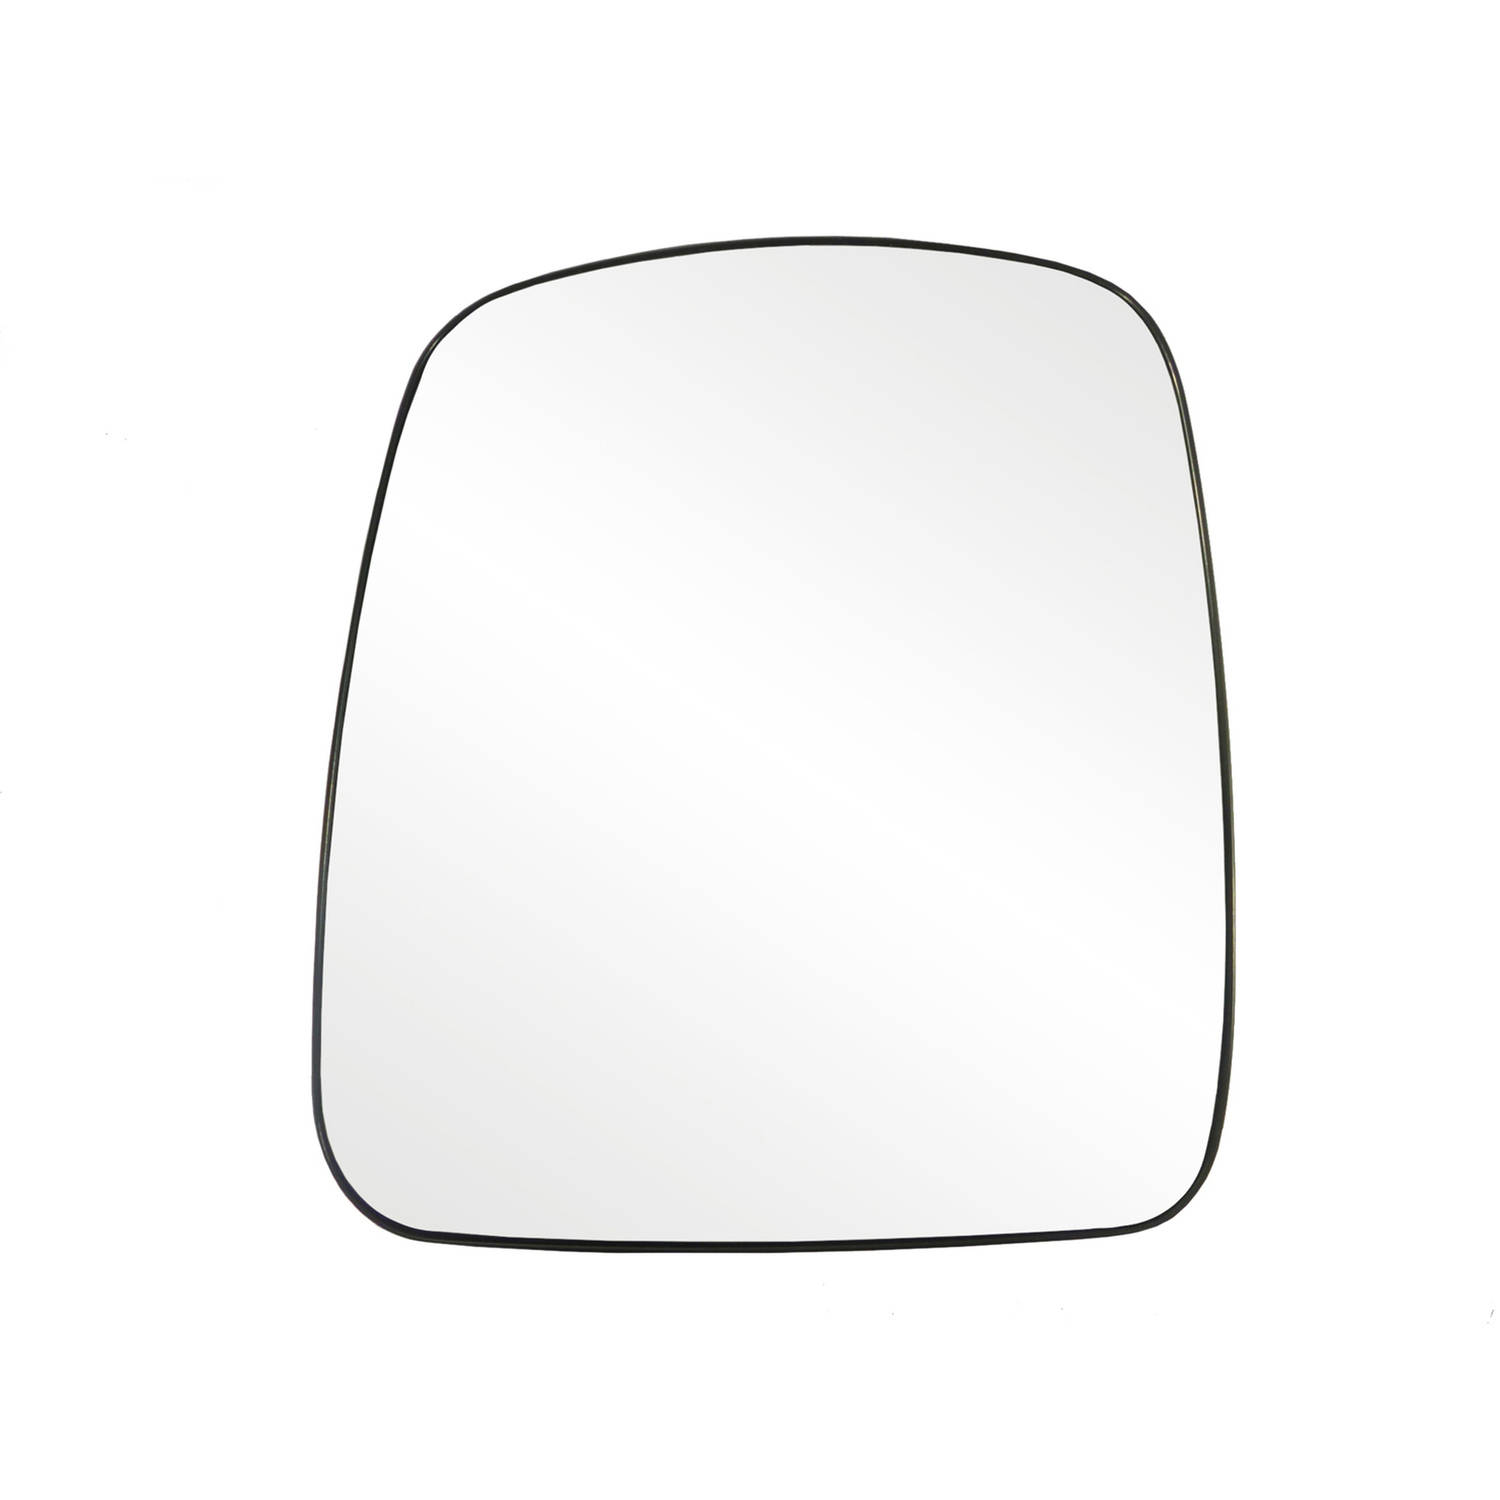 33219 - Fit System 03-07 Chevrolet Express / GMC Savana Heated Replacement Mirror Glass with backing plate, Driver Side - check description for fitment